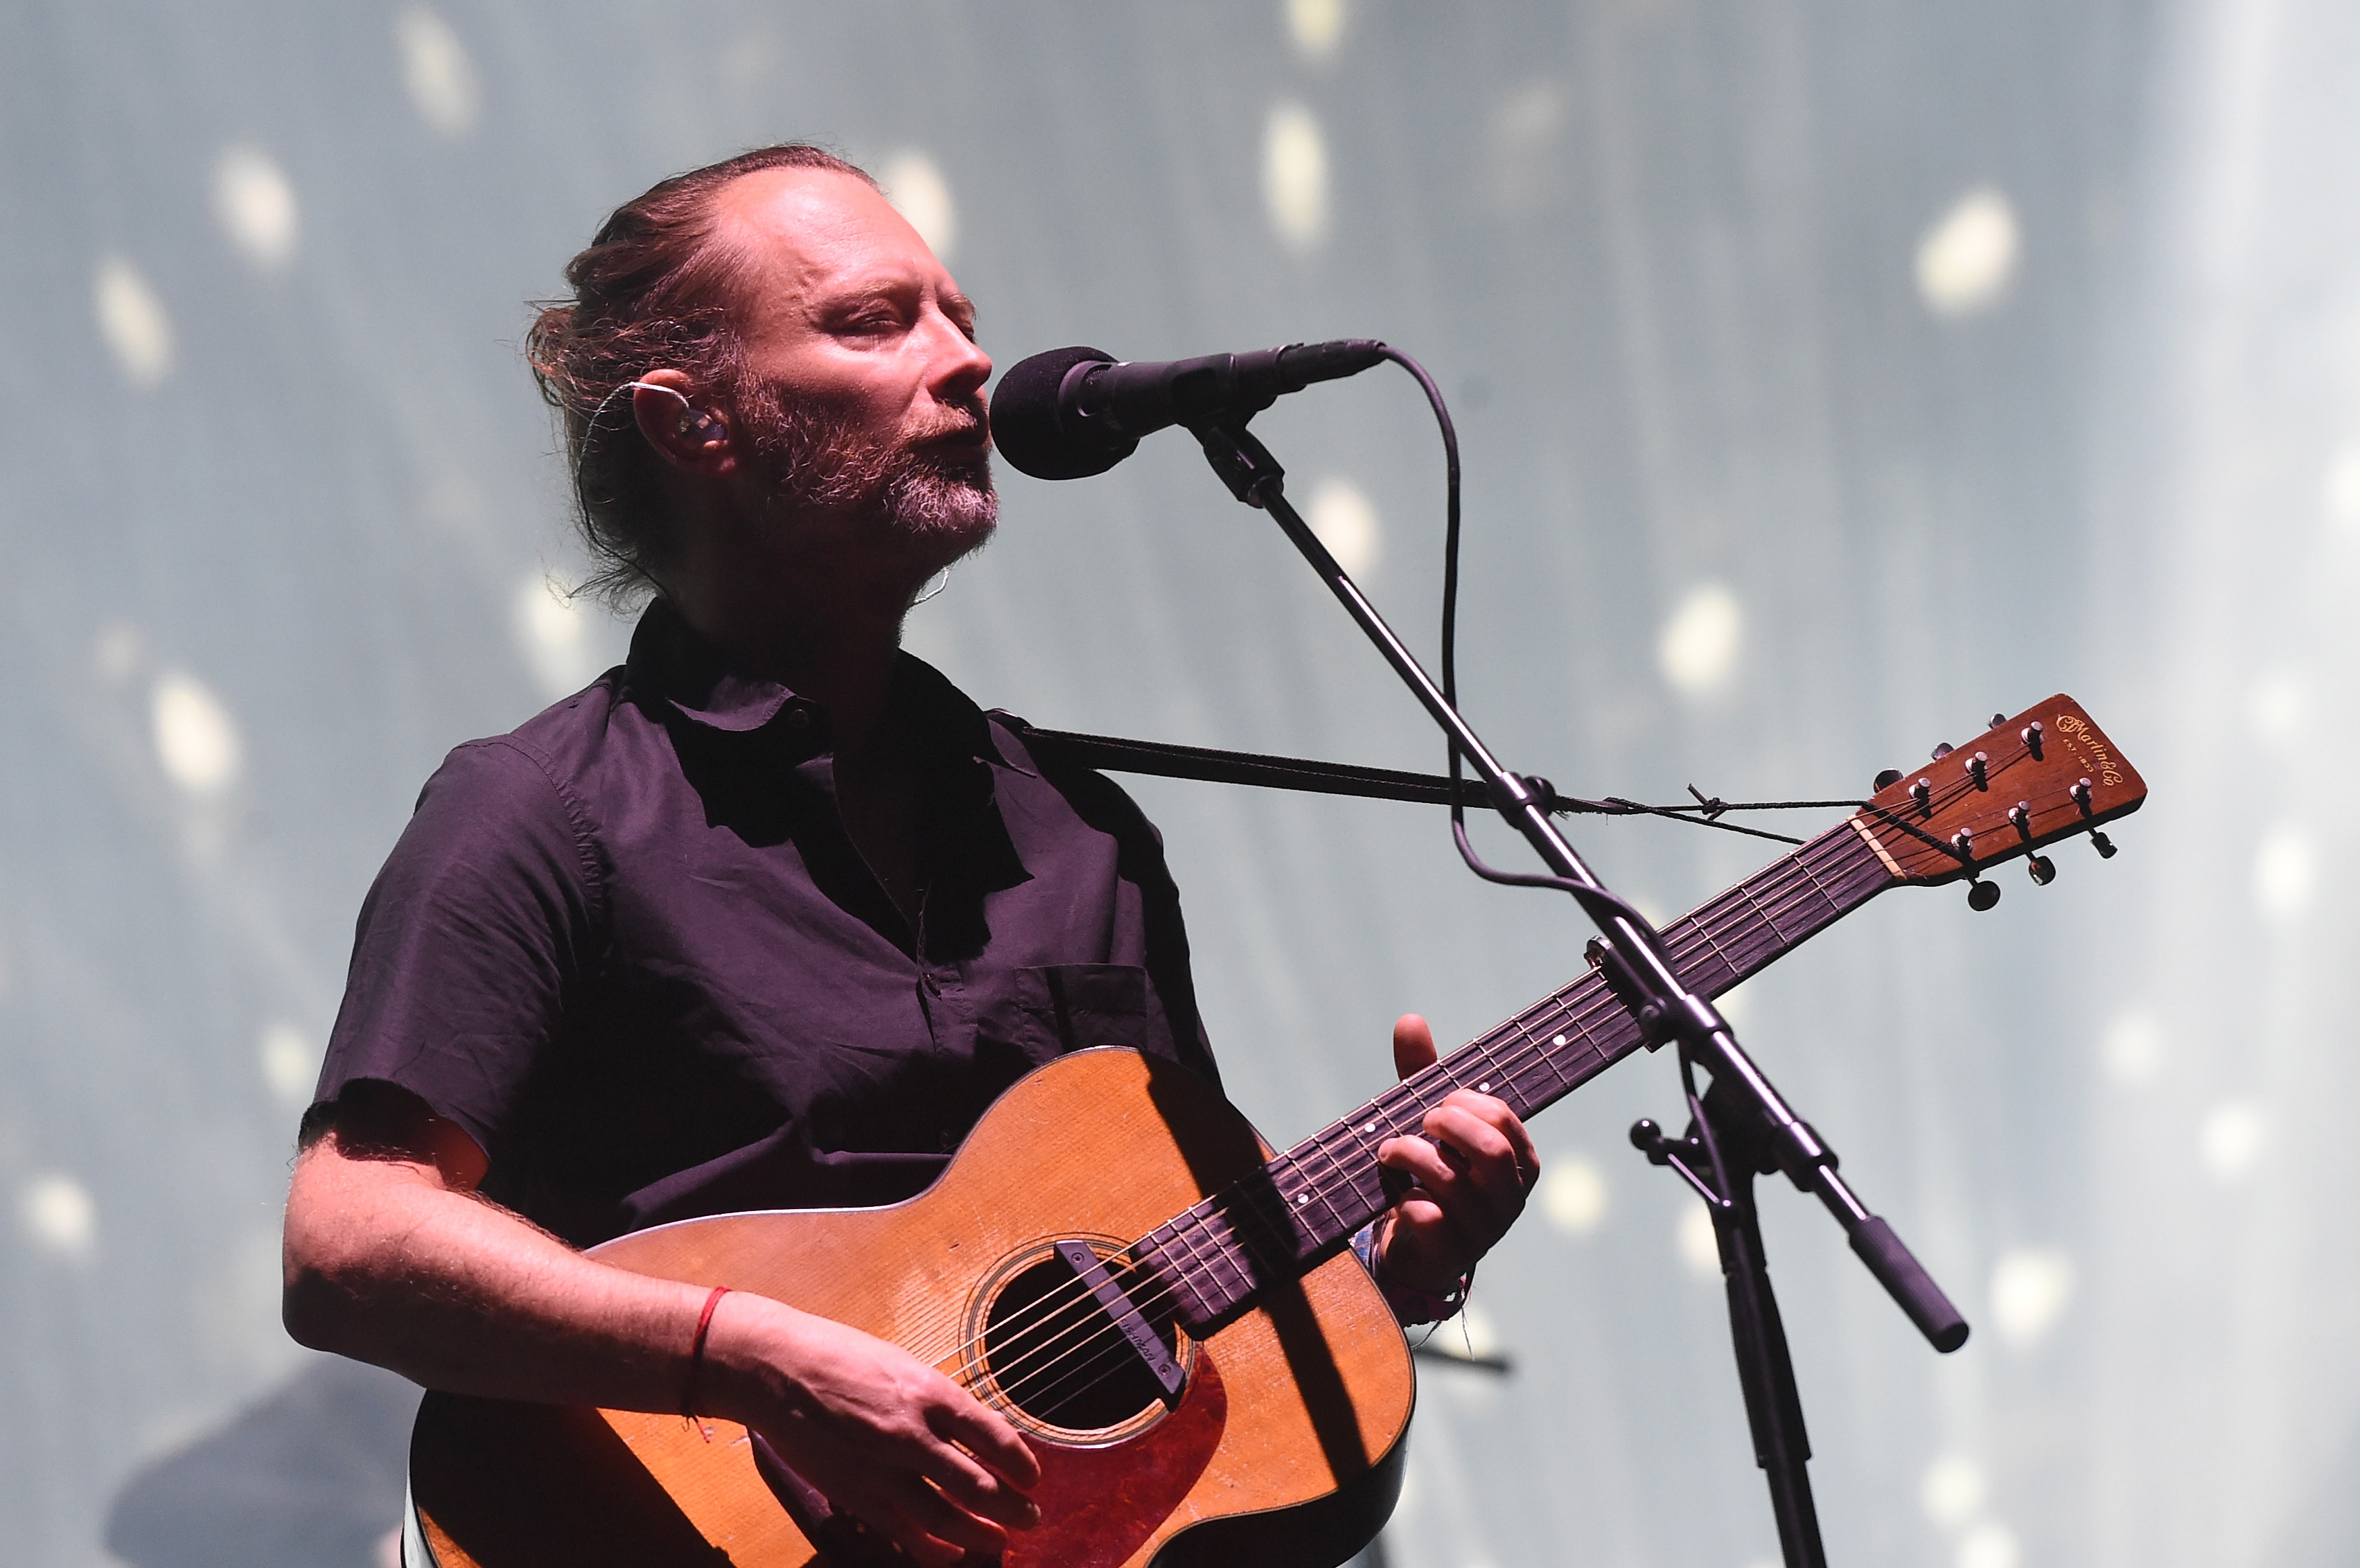 Hear radioheads previously unreleased song i promise rolling stone thom yorke radiohead solutioingenieria Gallery